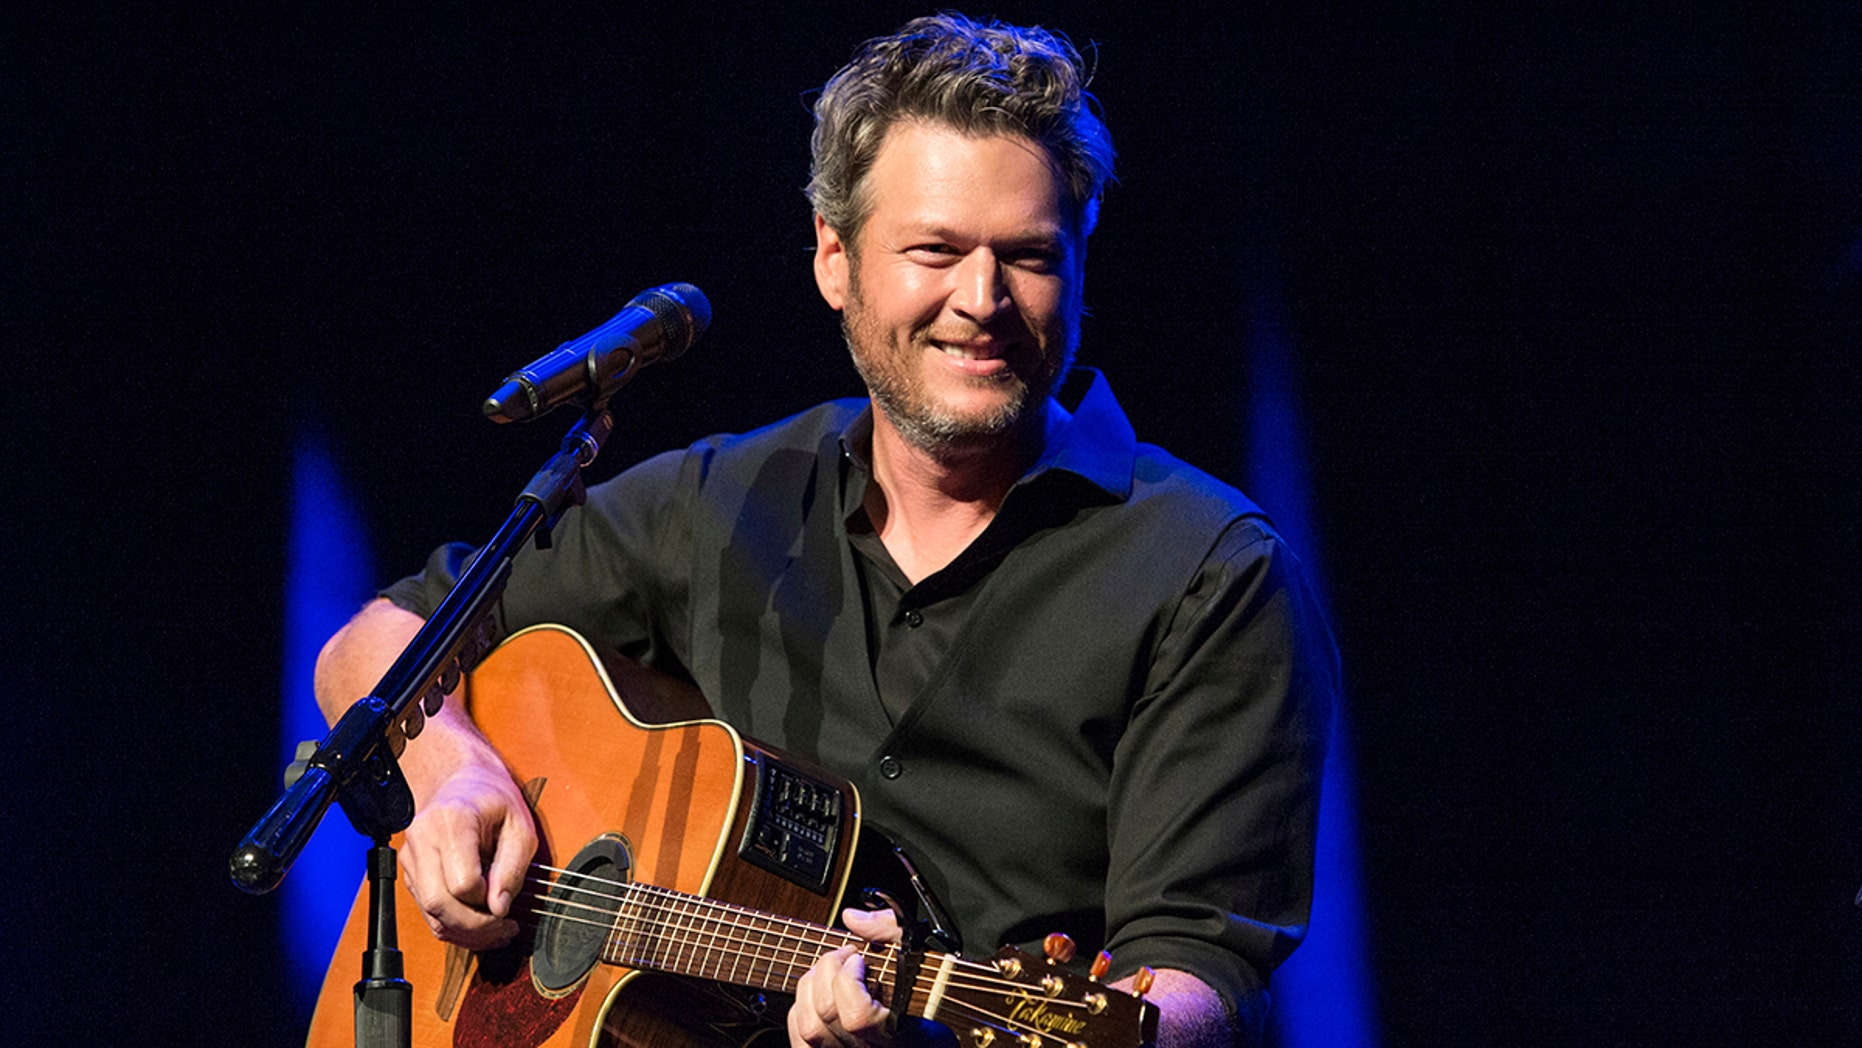 """FILE - This June 7, 2016 file photo shows Blake Shelton performing at the 12th Annual Stars for Second Harvest Benefit at Ryman Auditorium in Nashville, Tenn. Shelton was named as People magazine's 2017 """"Sexiest Man Alive.""""  (Photo by Amy Harris/Invision/AP, File)"""